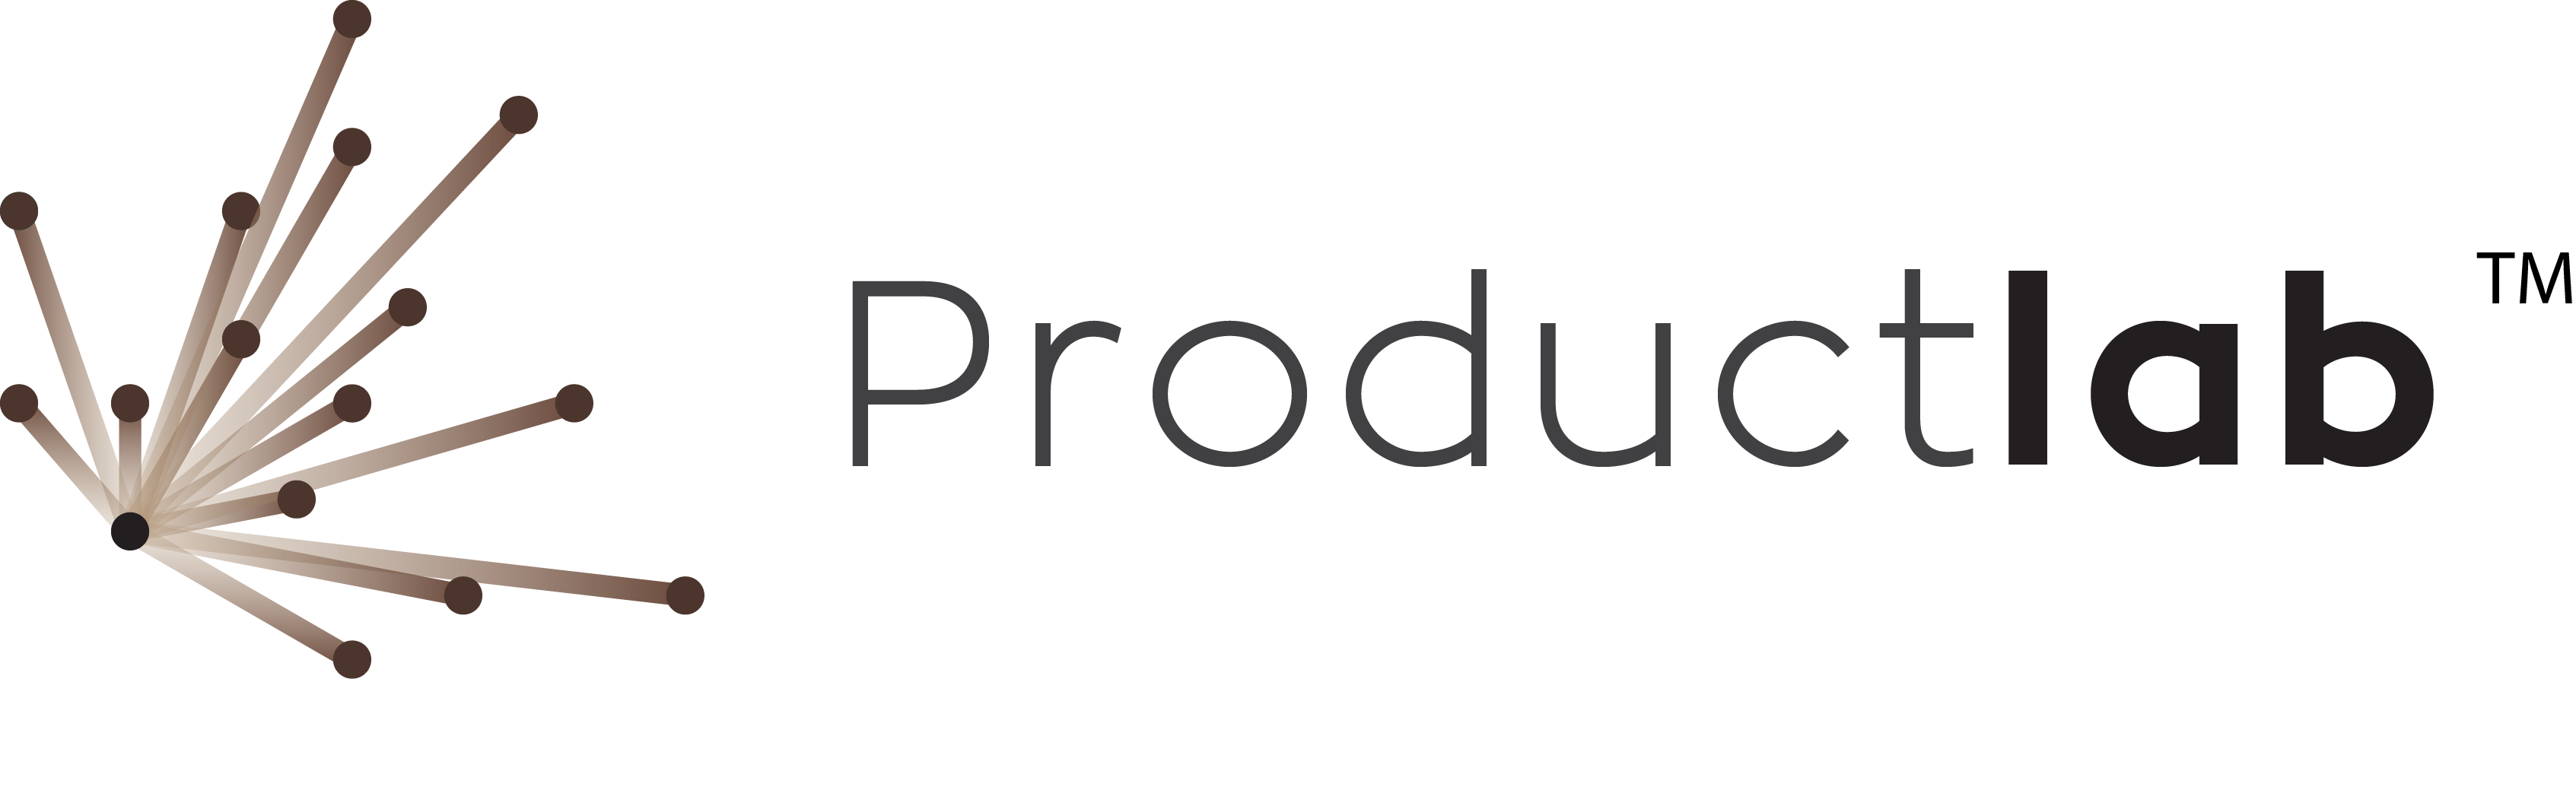 product-lab.png